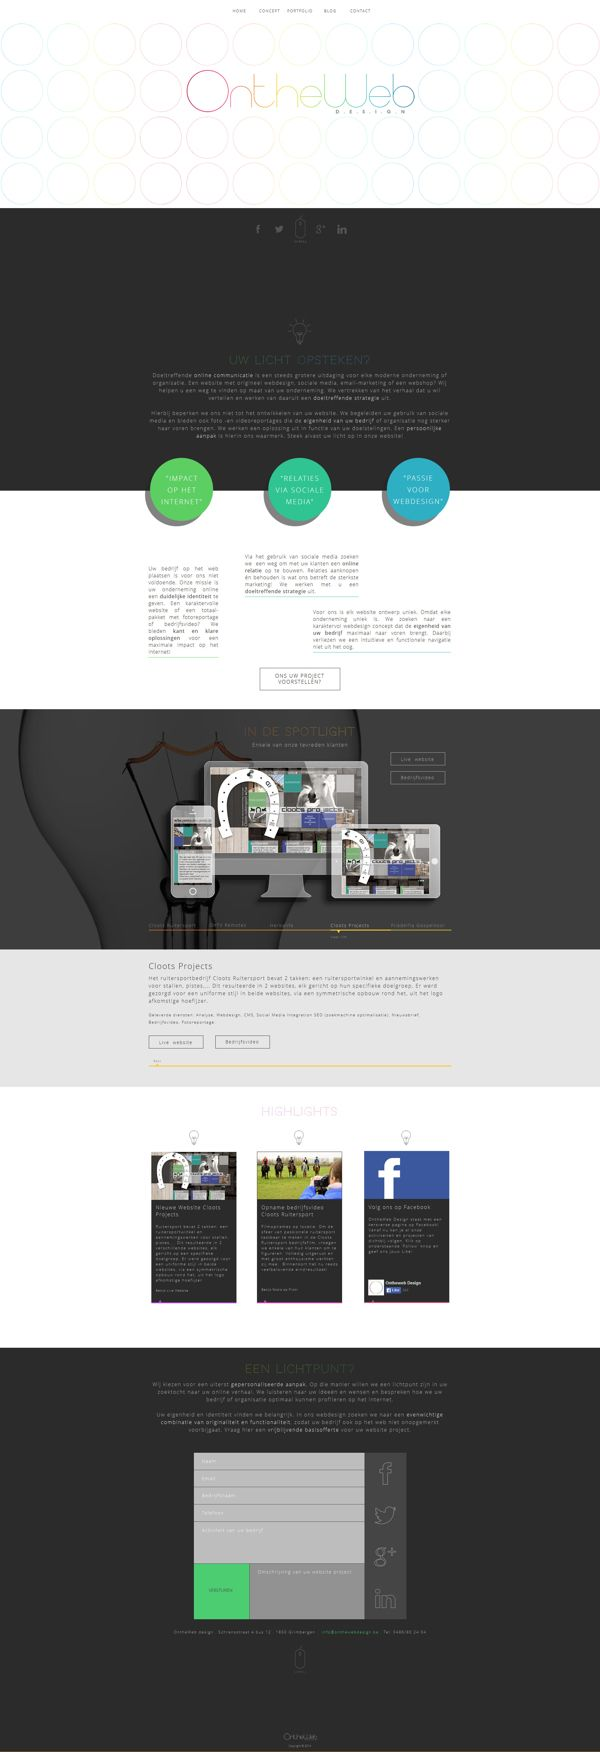 OntheWeb Design by Tom Mualaba, via Behance